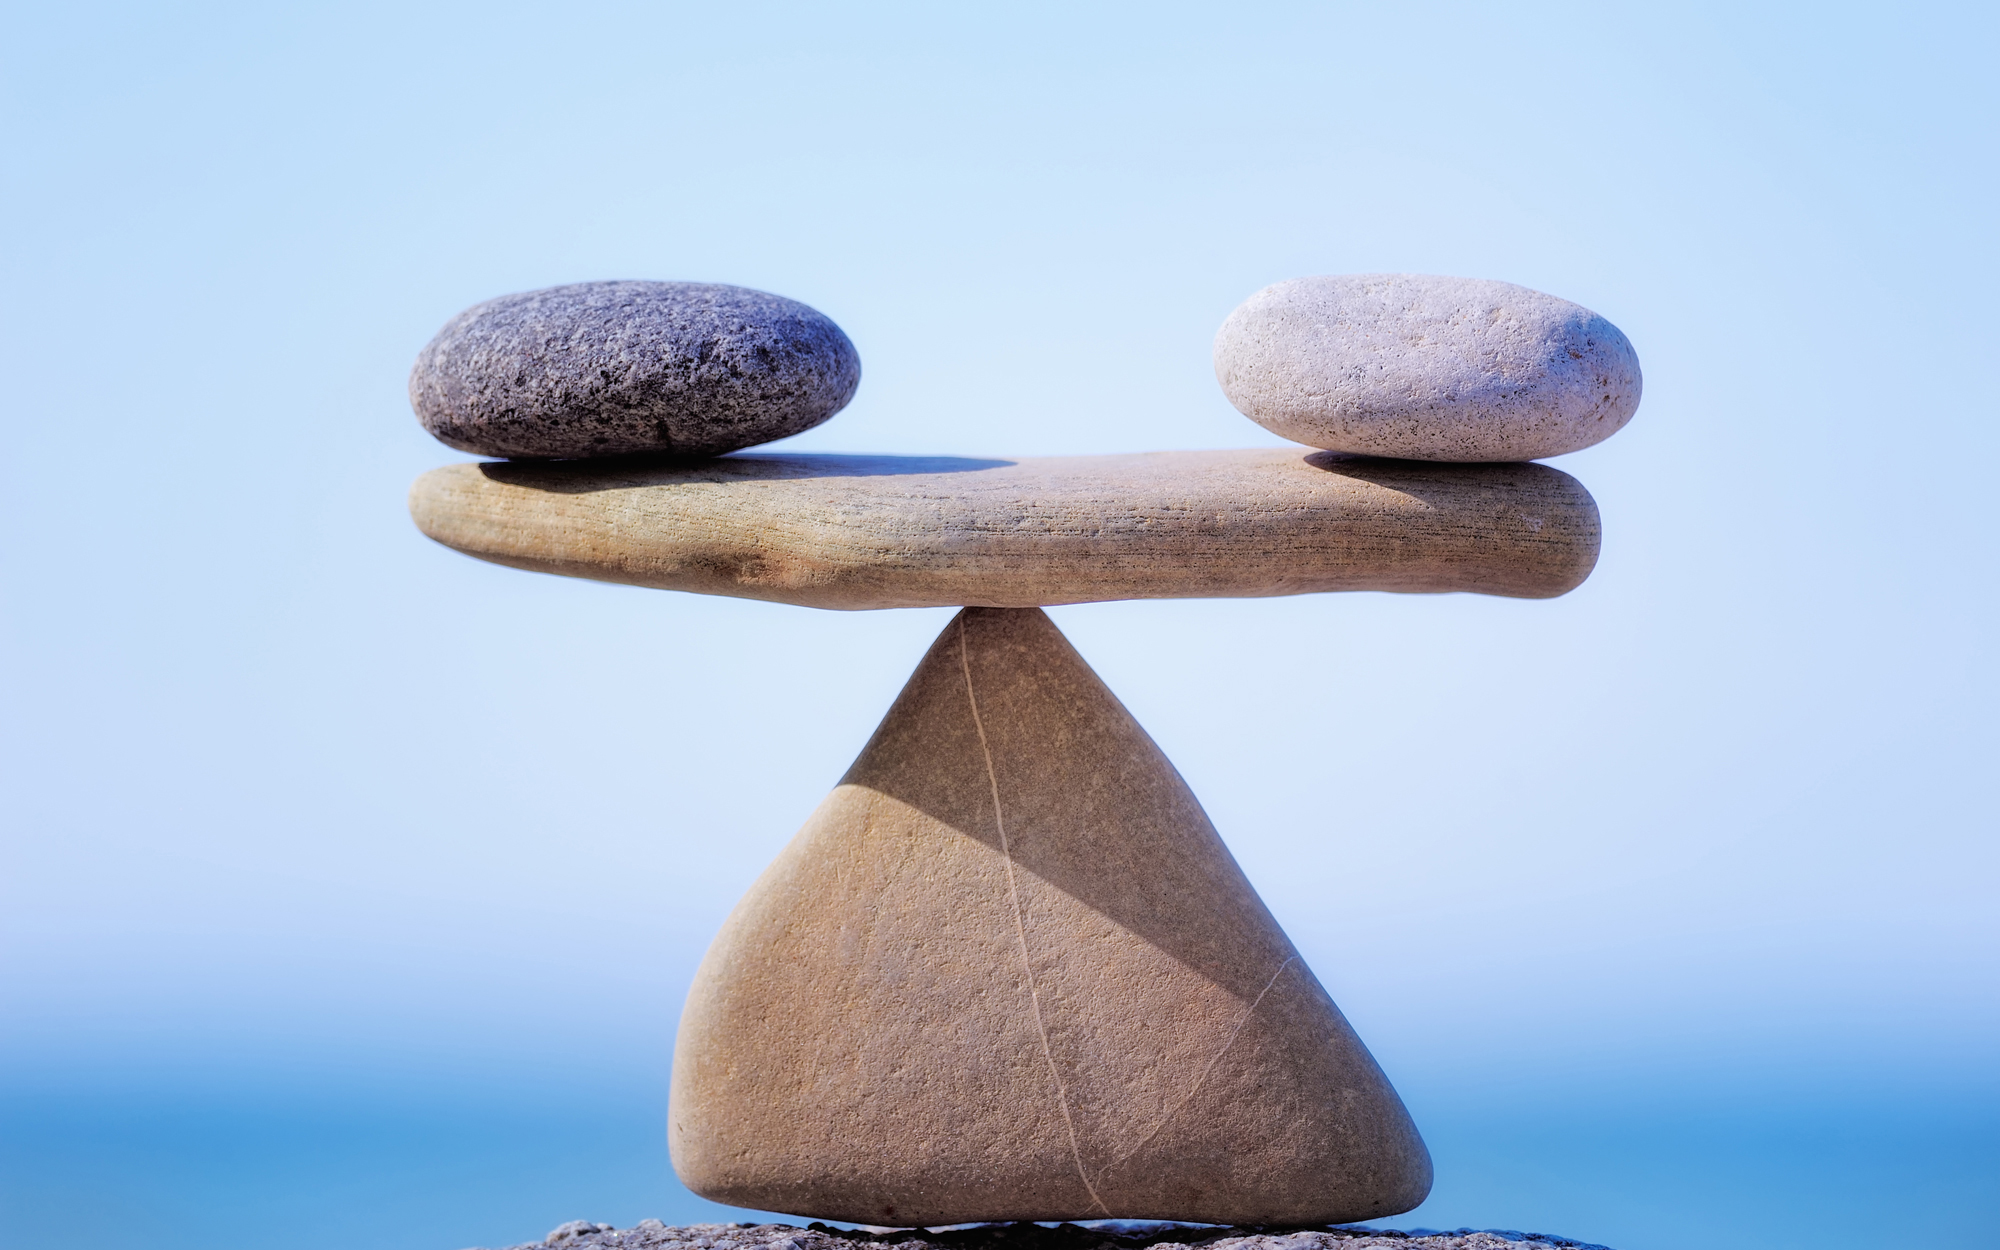 Bringing balance in our lives between our actives and our inner journey of meditation.